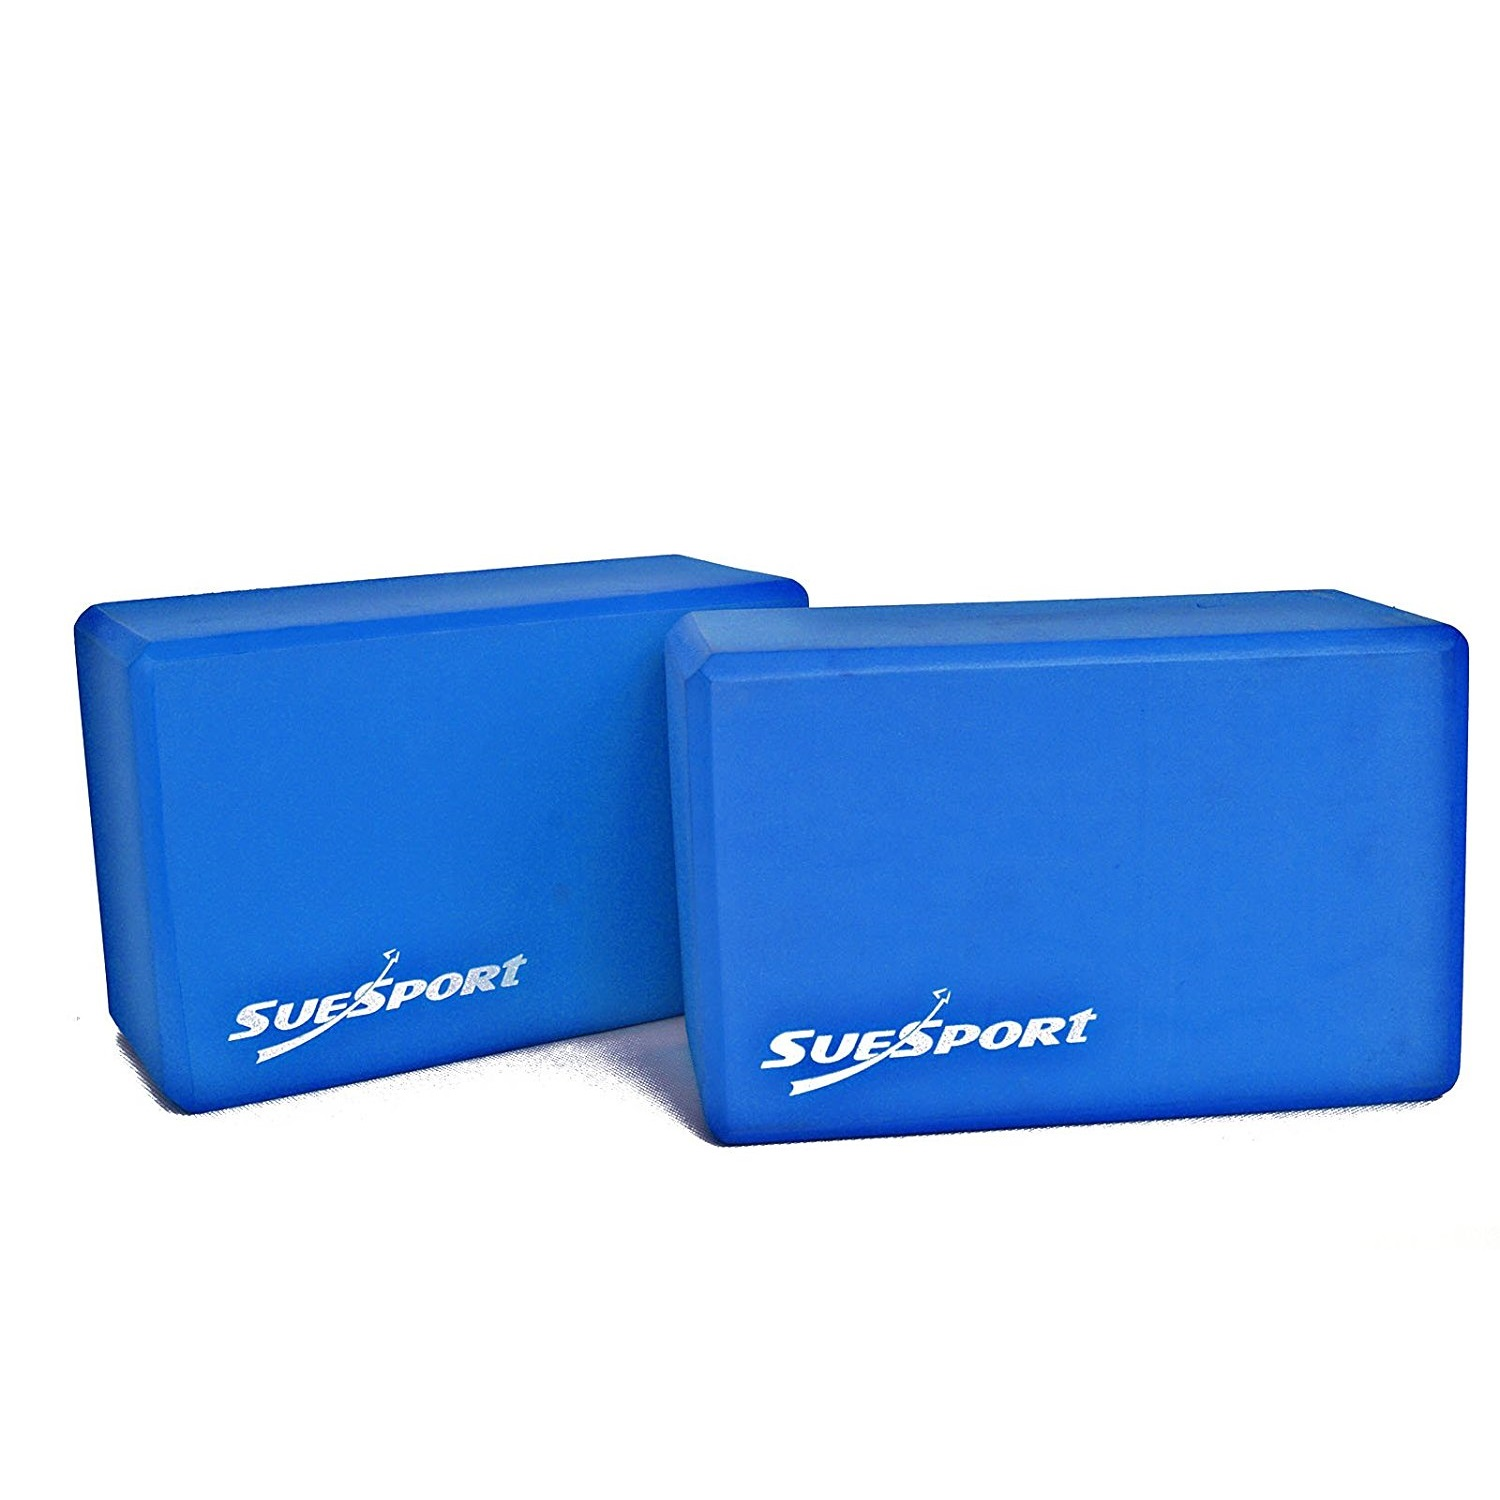 suesport blue high density foam yoga blocks